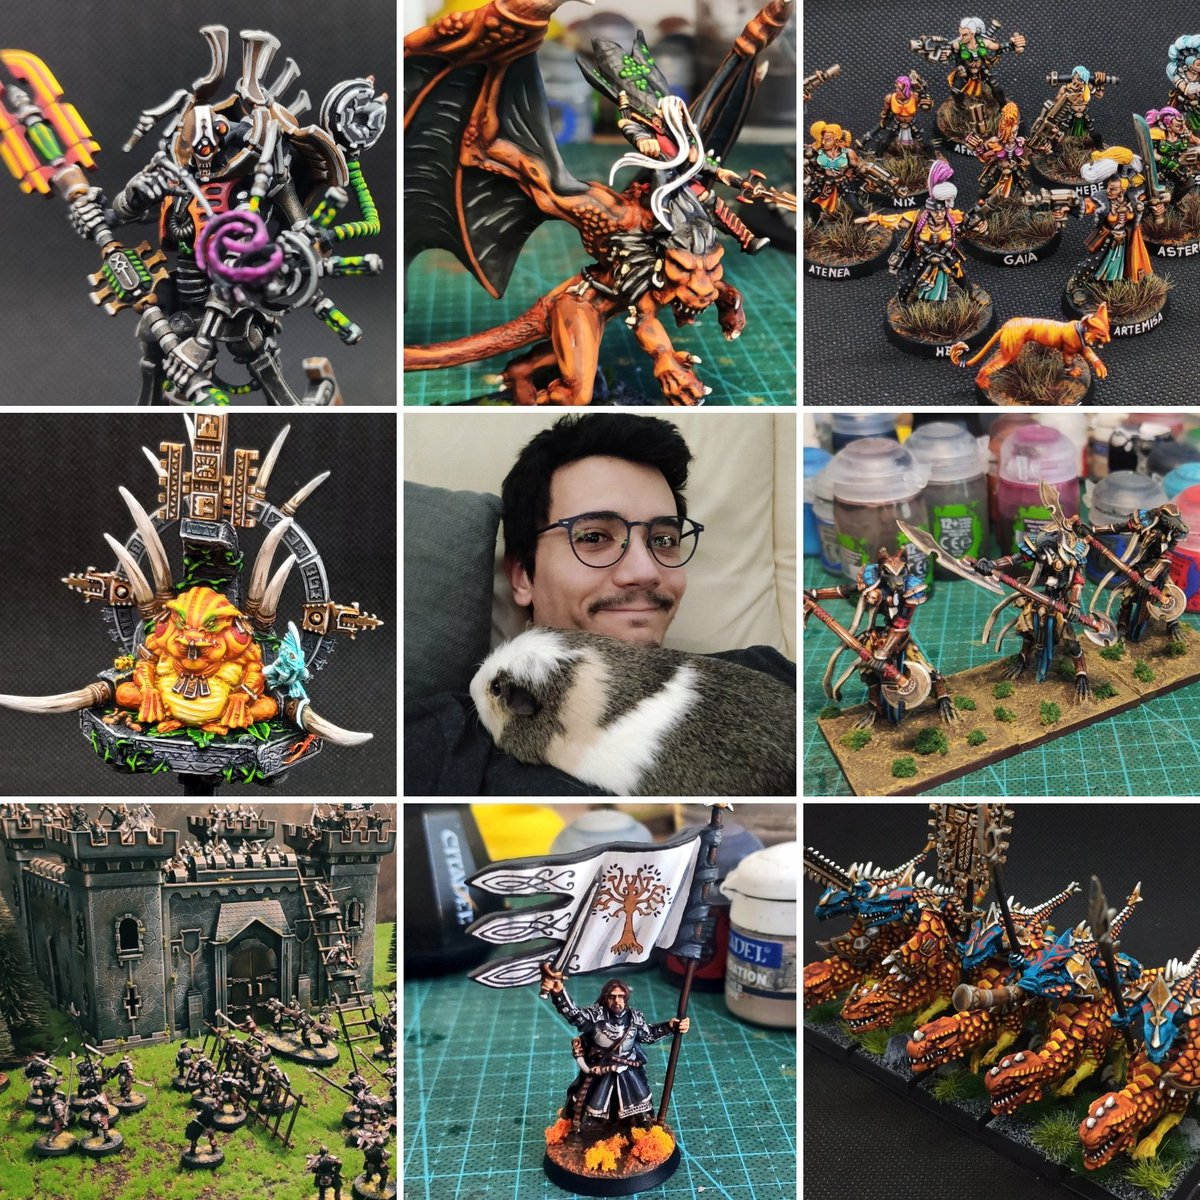 Glad to see your faces so here's mine with my fluffy babe  #Warmongers #PaintingWarhammmer #facesbehindthehobby https://t.co/EN21zGQpC8